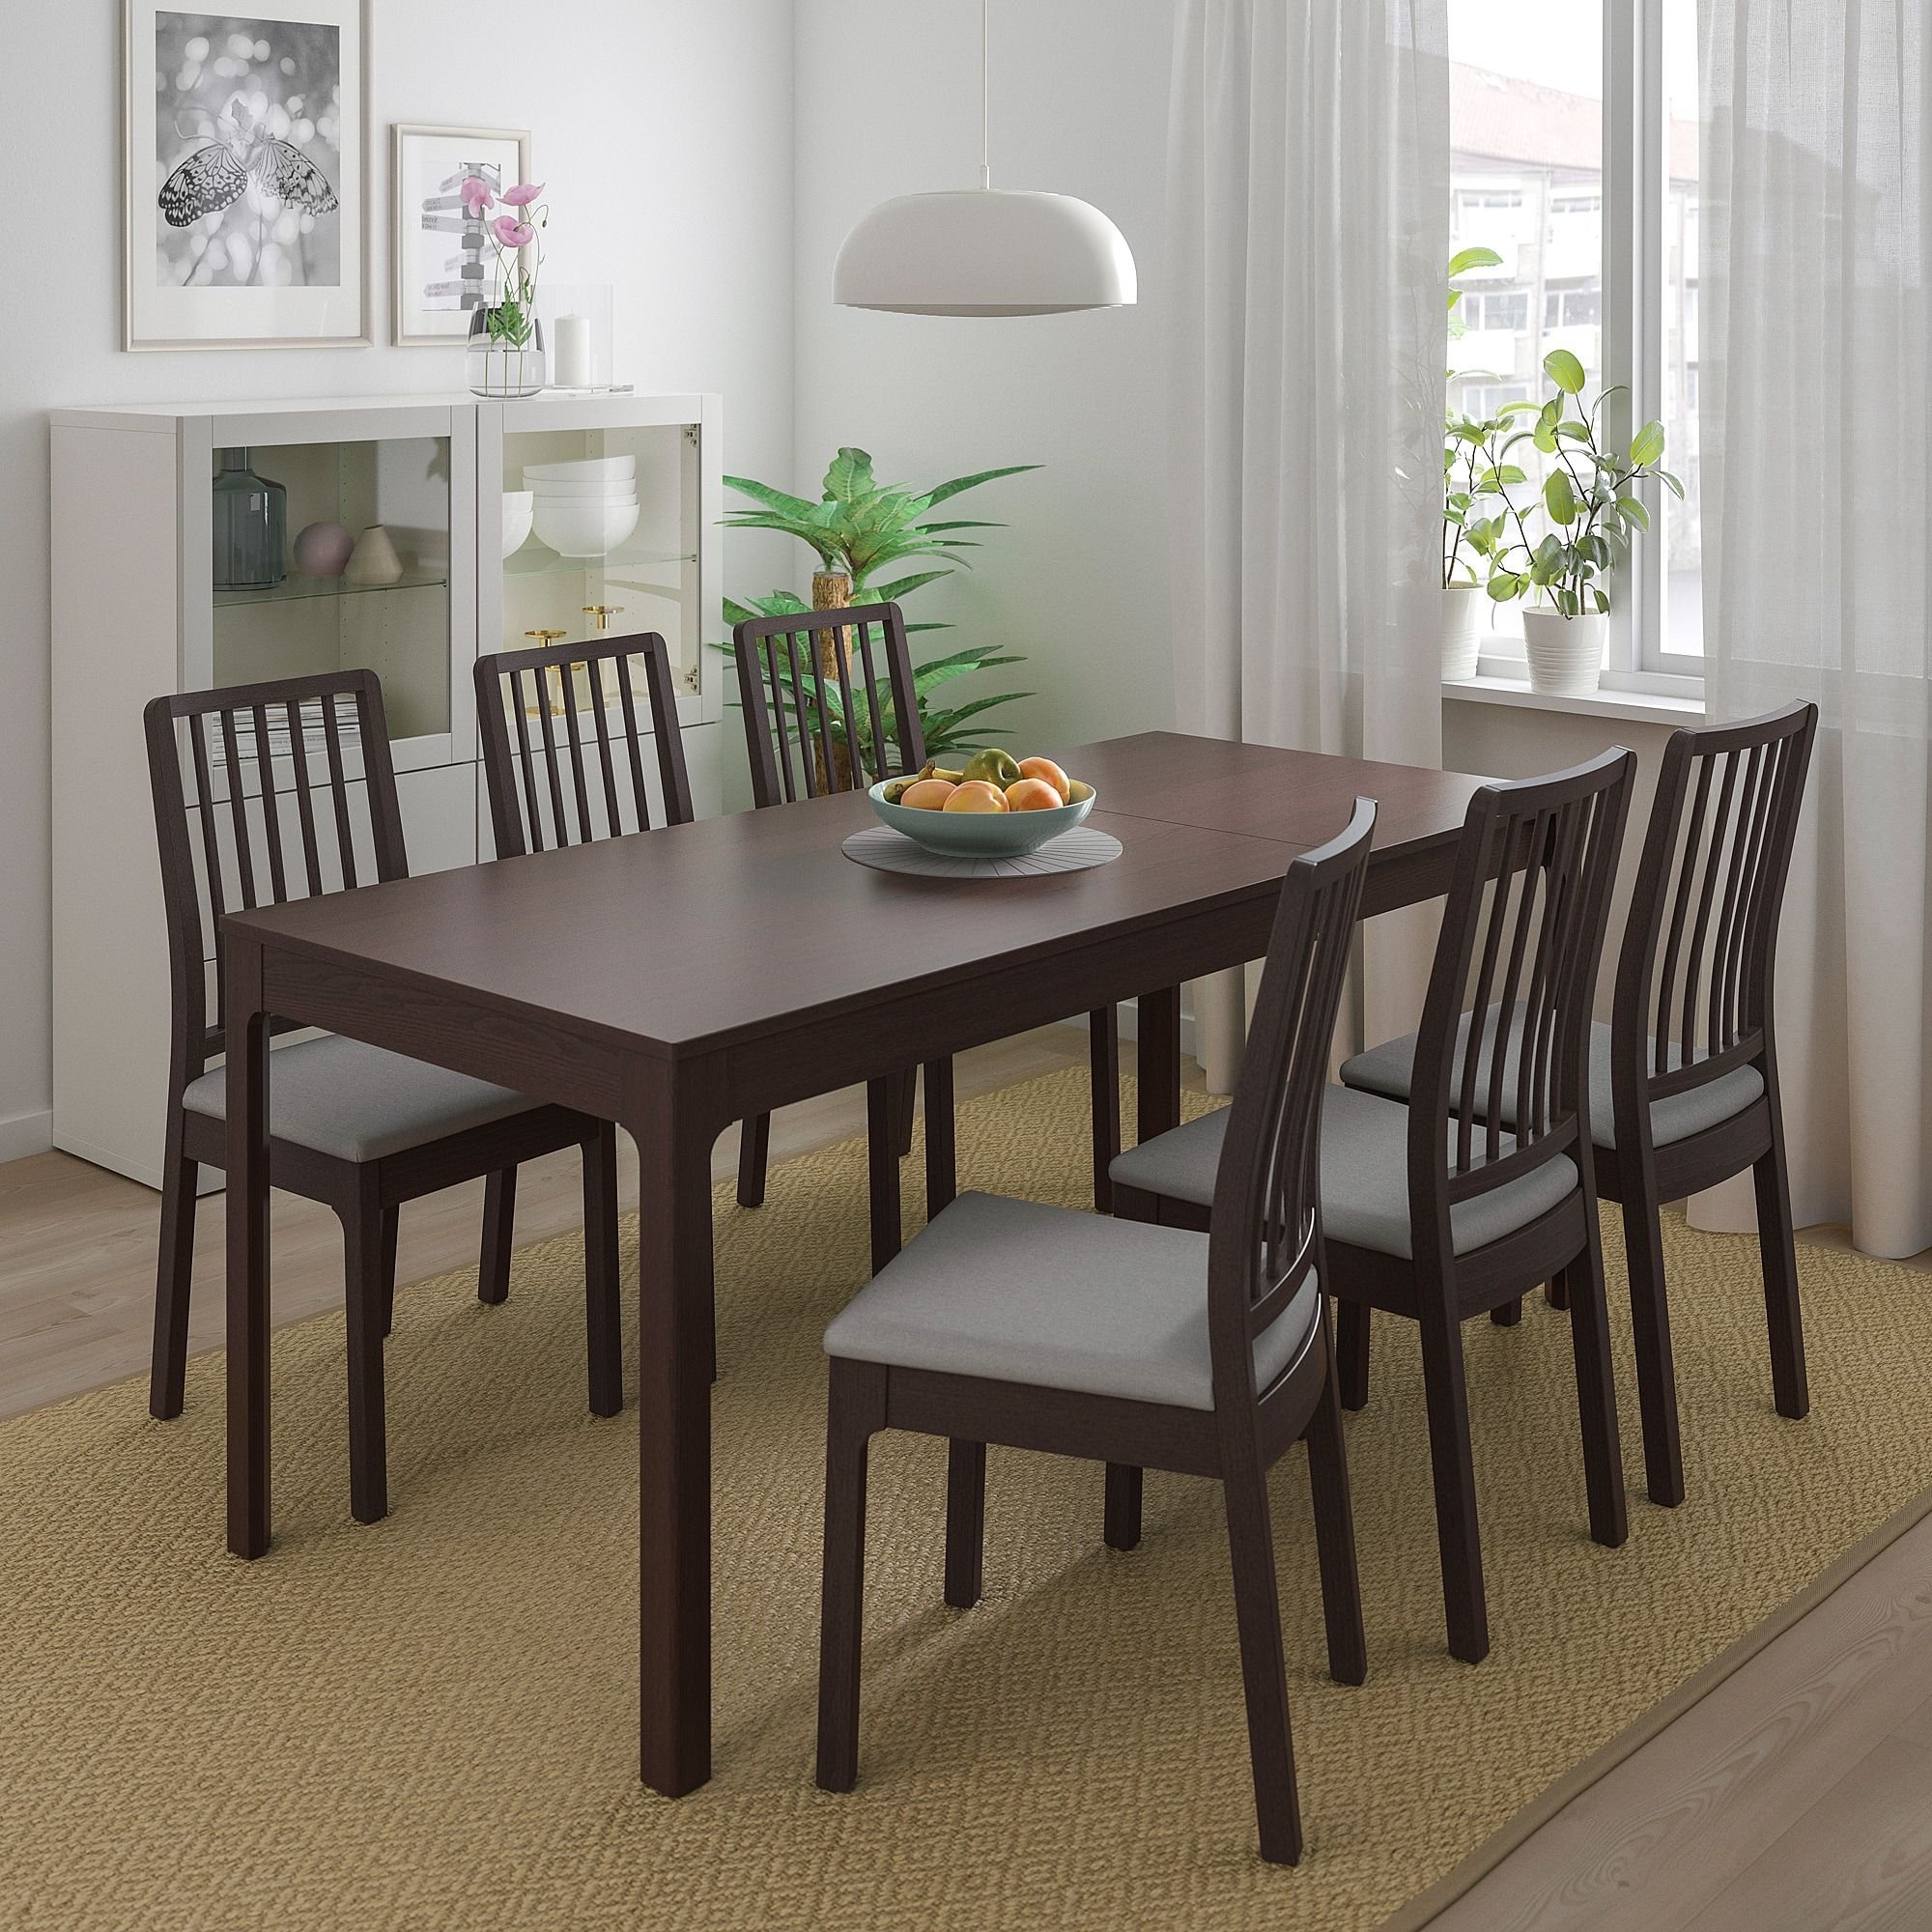 Popular Liles 5 Piece Breakfast Nook Dining Sets Pertaining To Ikea – Ekedalen / Table And 4 Chairs Dark Brown, Orrsta Light Gray (View 15 of 20)